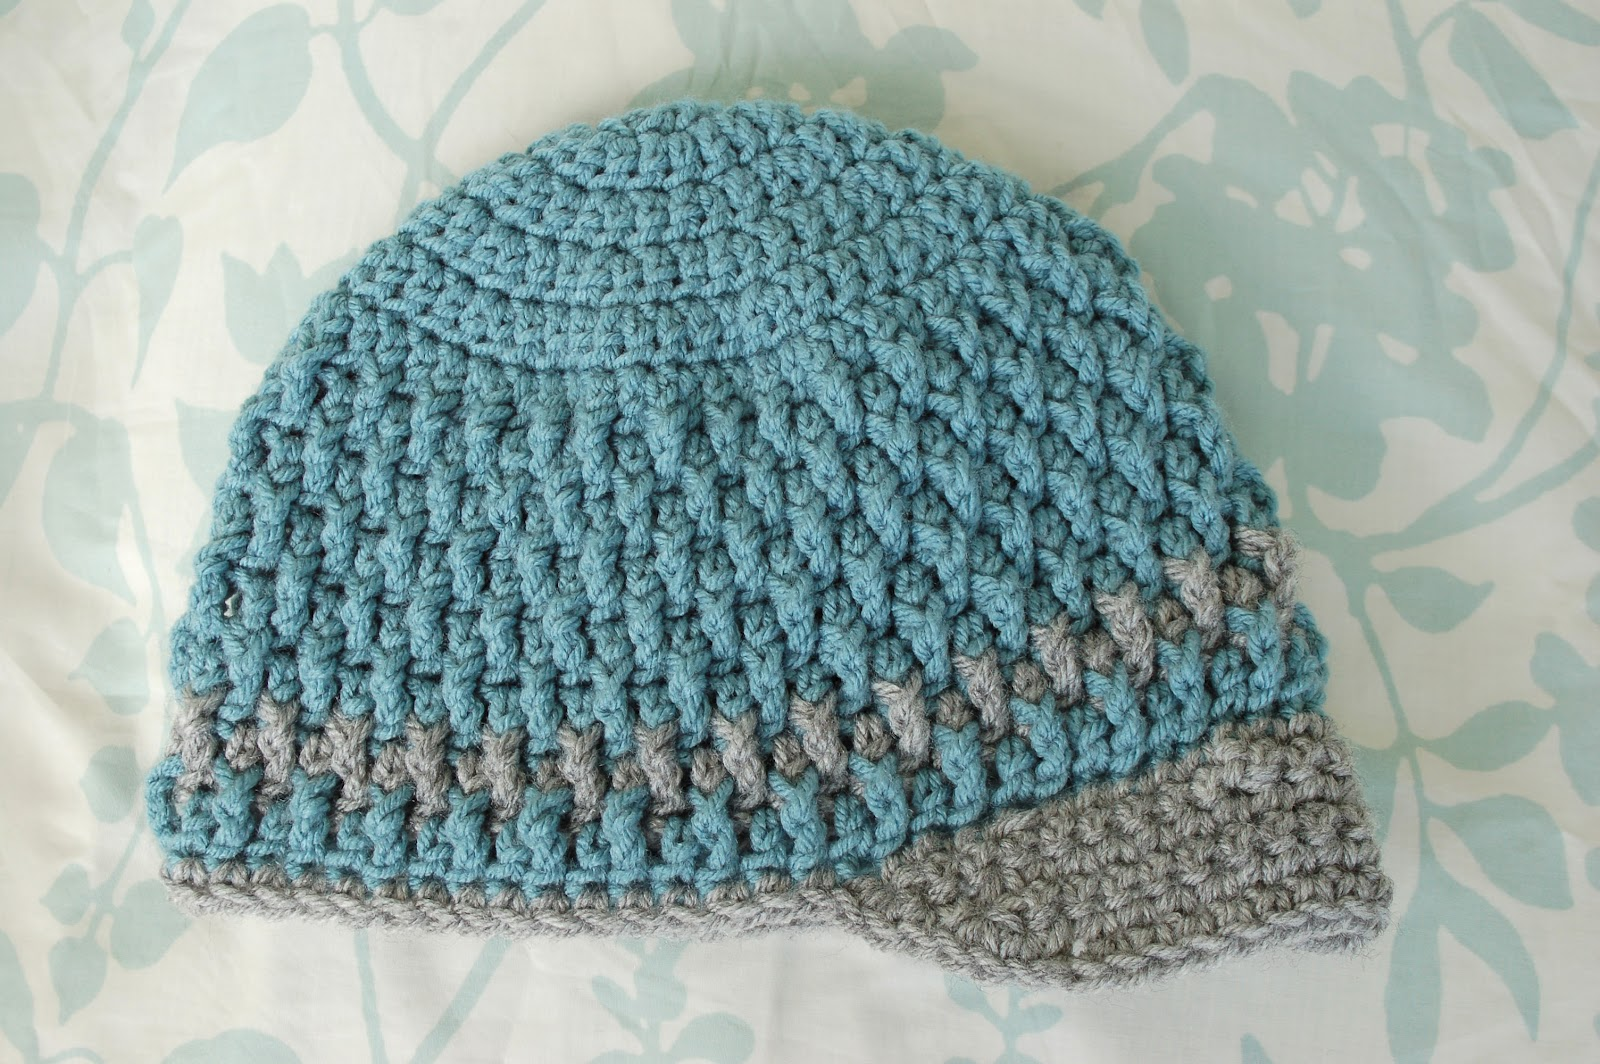 Free Crochet Baby Hat Patterns : Alli Crafts: Free Pattern: Deeply Textured Hat - Toddler